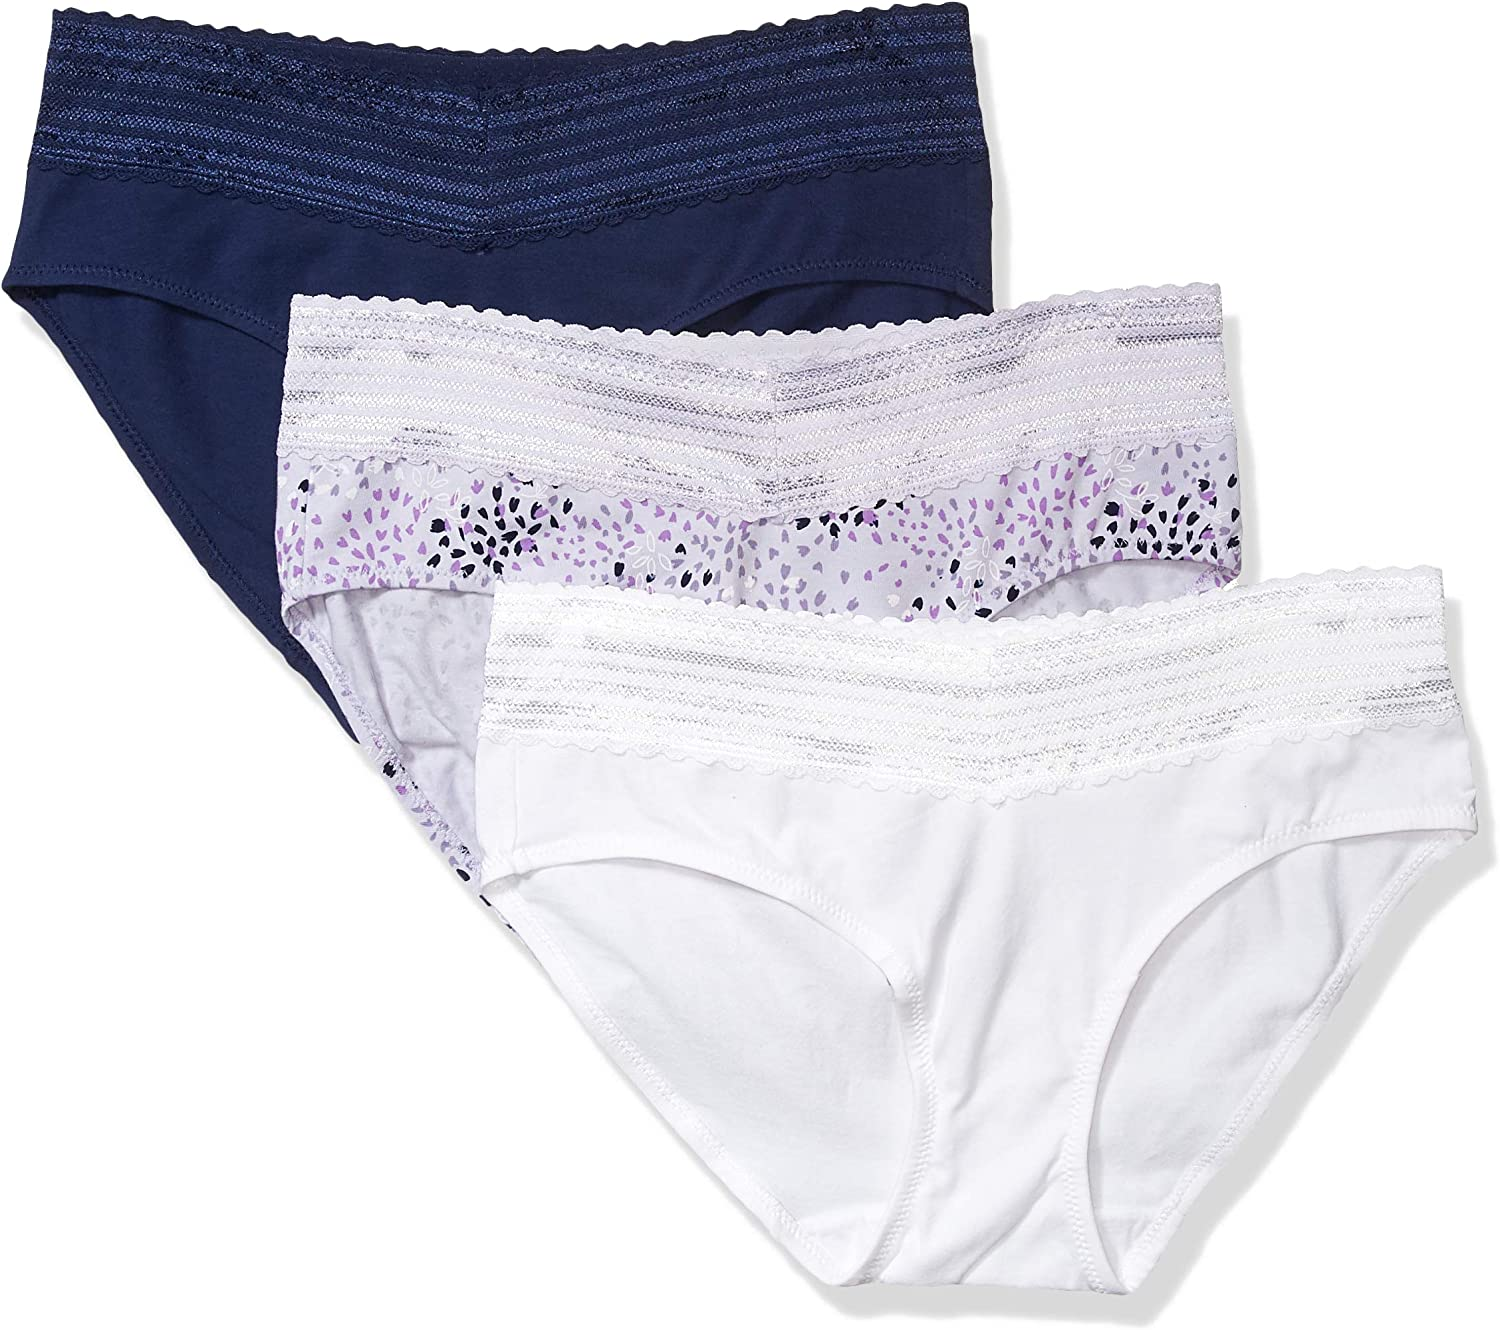 Warners Womens No Pinching No Problems 3 Pack Cotton Hipster with Lace Panties